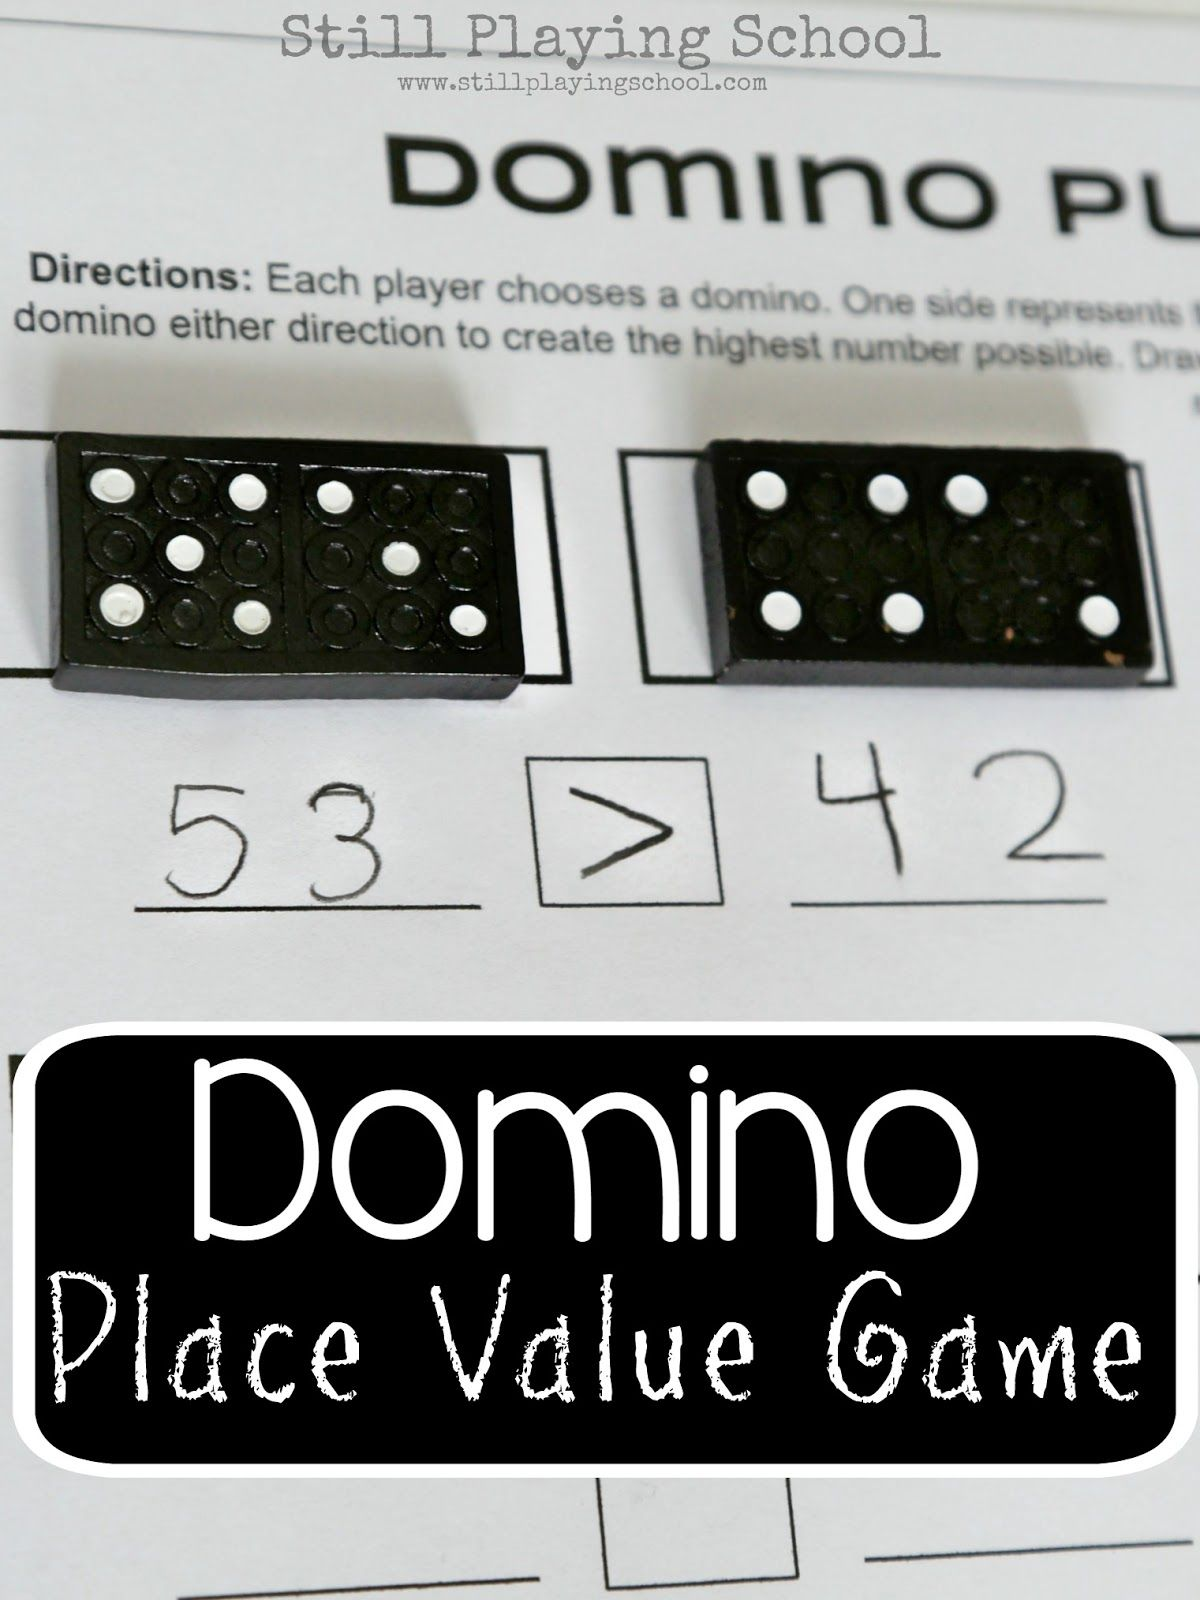 Dominoes Place Value Game for Kids | Math, Gaming and School